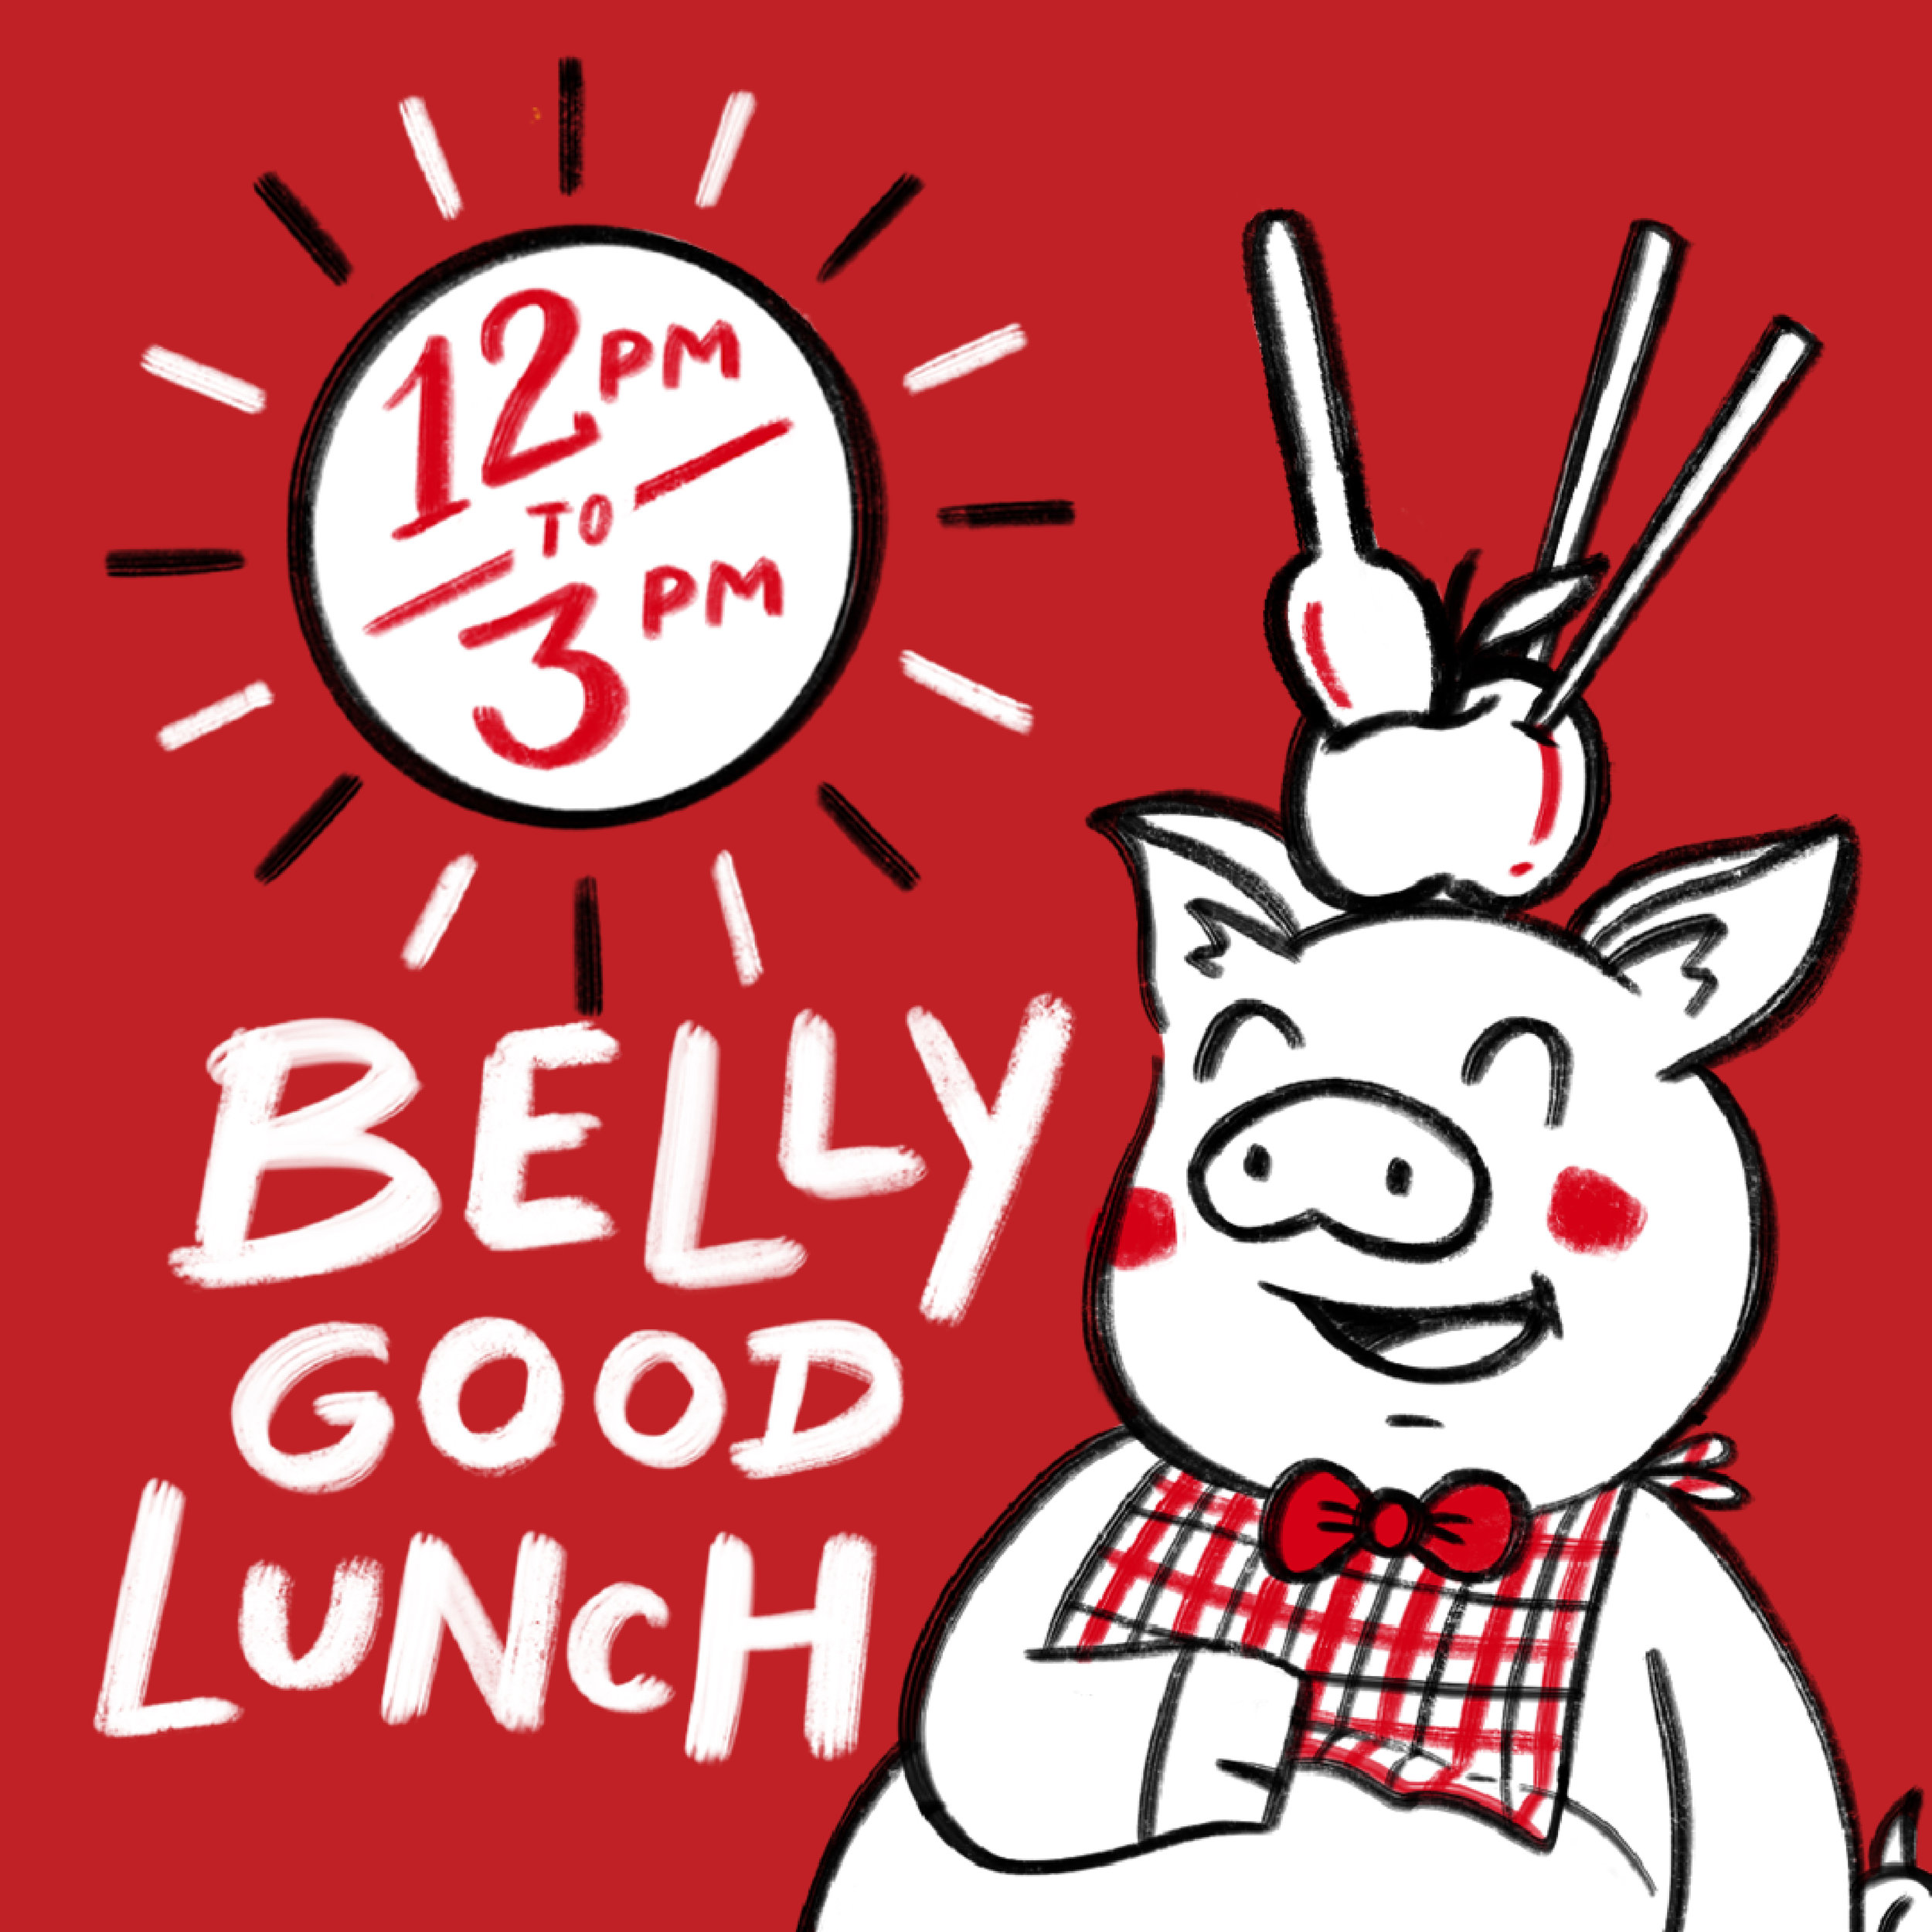 BELLY GOOD LUNCH - Apple Samgyupsal - Set LunchAvailable daily from 12.00pm to 3.00pm daily at Jaya One and Puchong outlets.